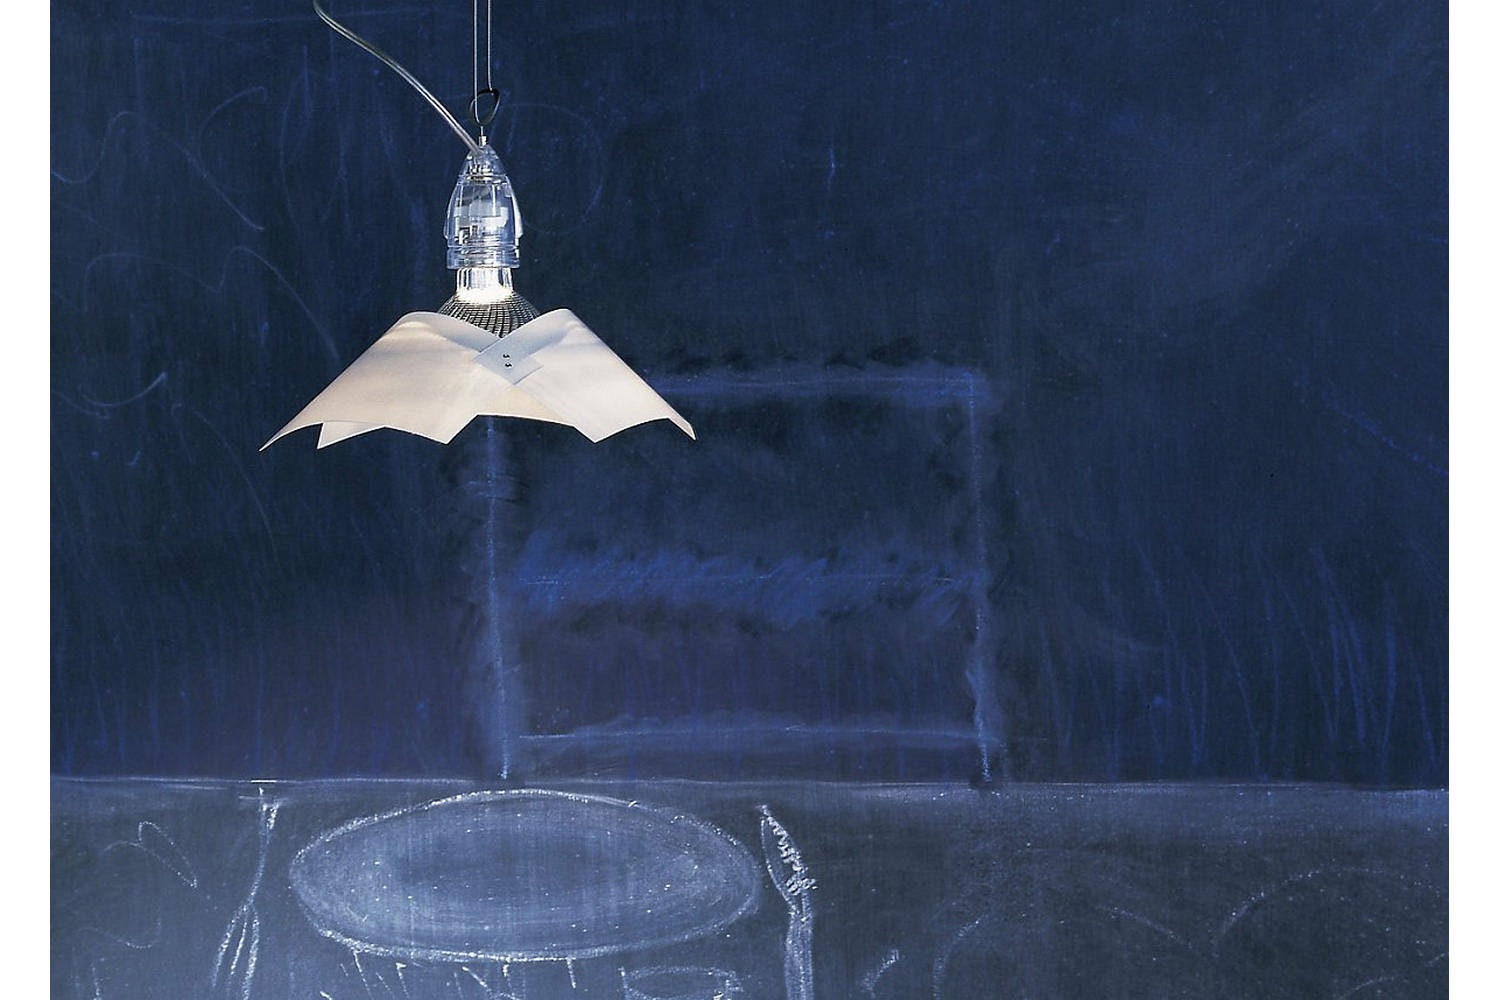 Lucetto Suspension Lamp by Bernhard Dessecker, Ingo Maurer und Team for Ingo Maurer